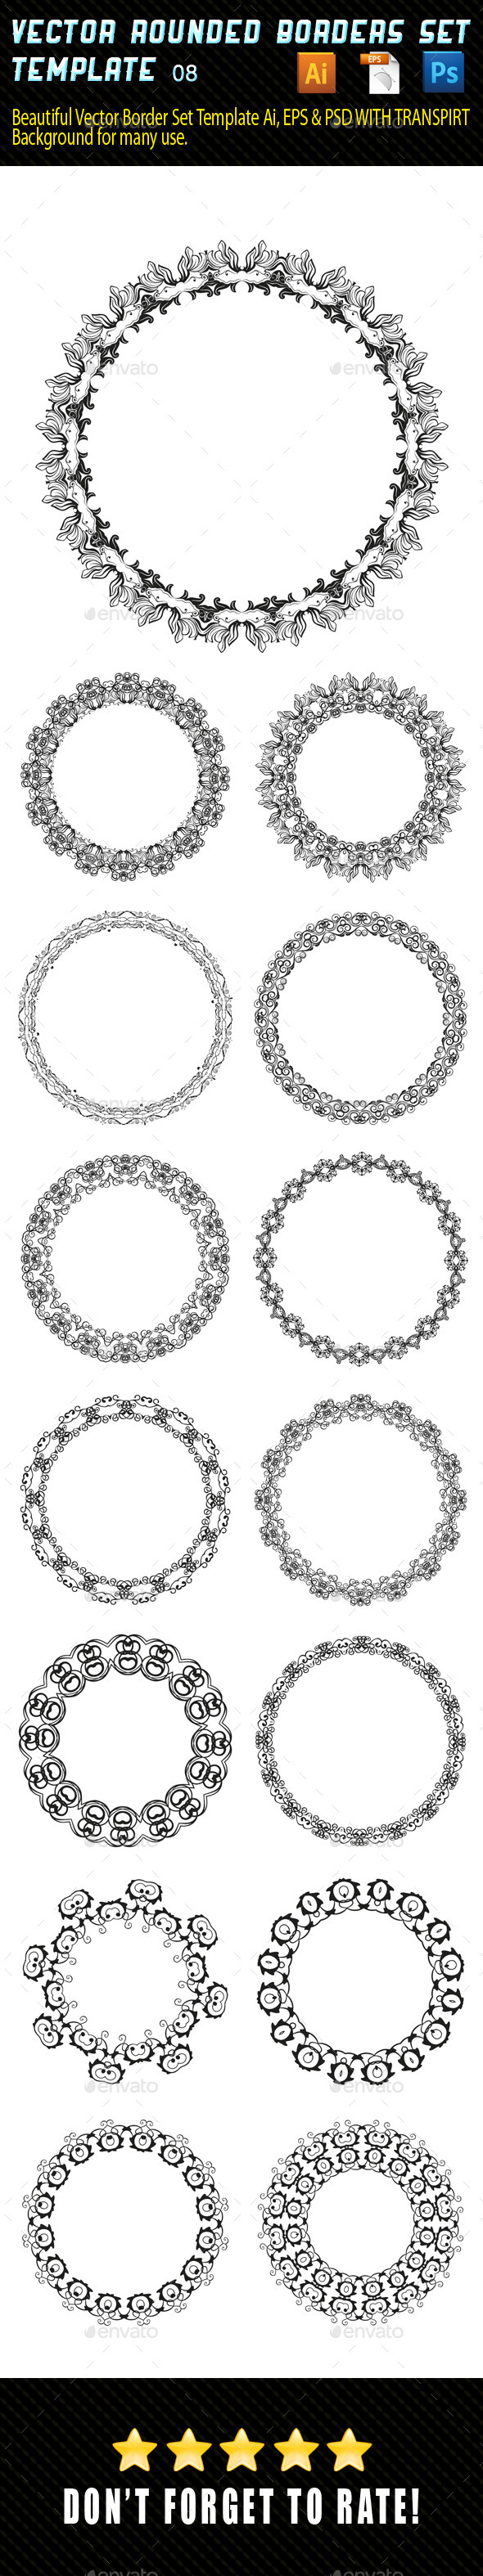 Vector Rounded Borders 08 - Borders Decorative